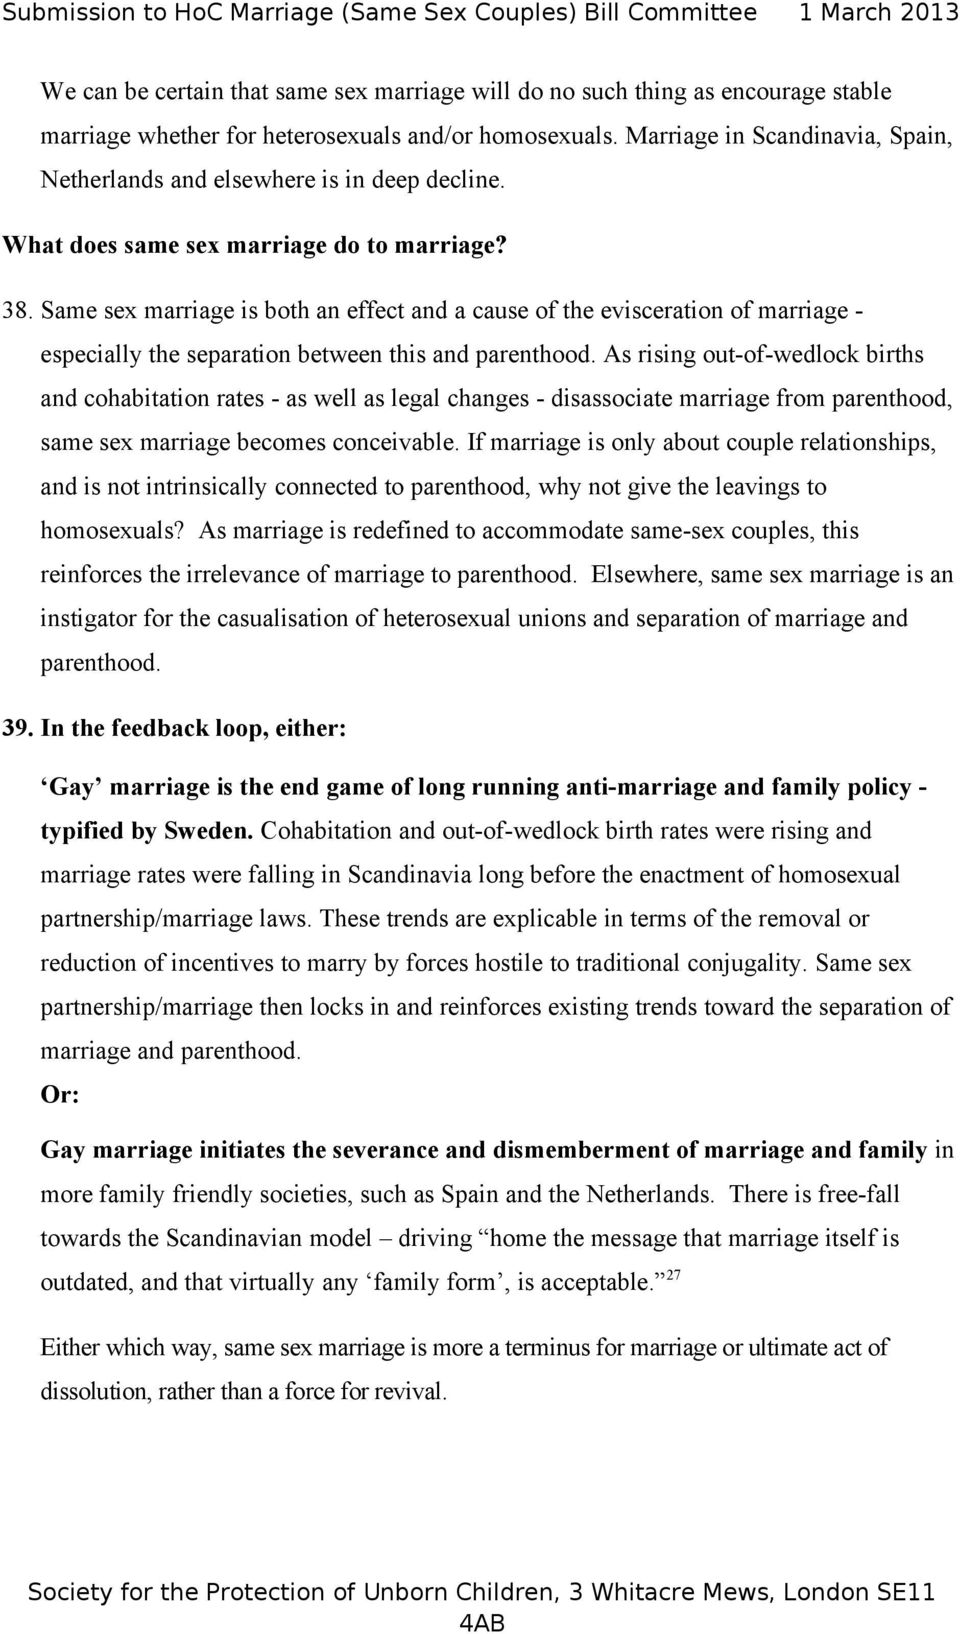 Same sex marriage is both an effect and a cause of the evisceration of marriage - especially the separation between this and parenthood.